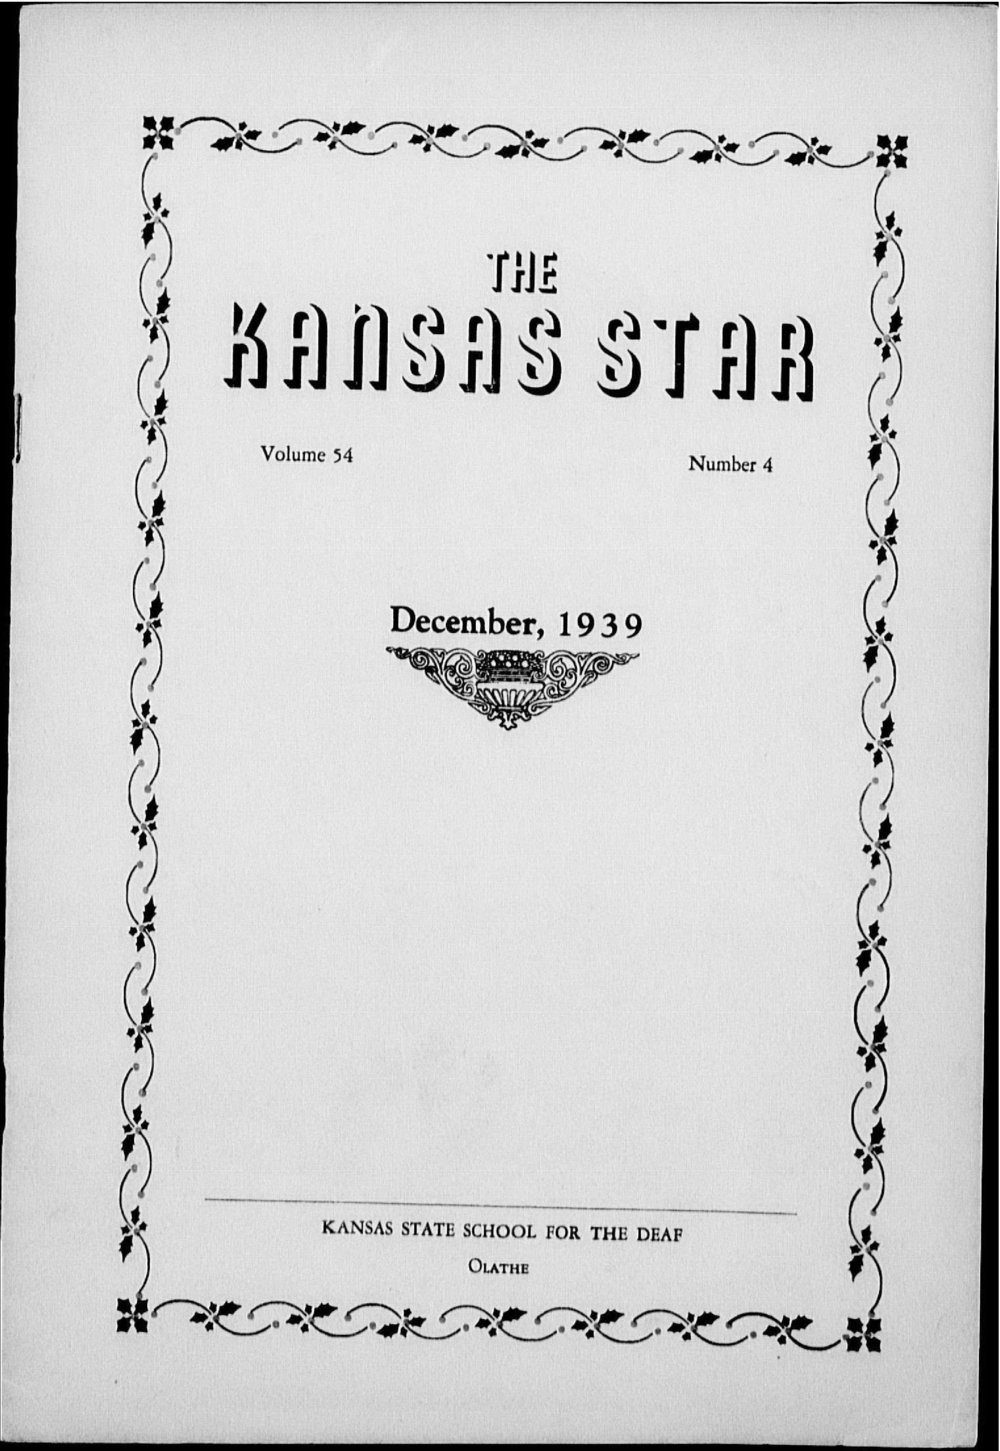 The Kansas Star, volume 54, number 4 - Front cover